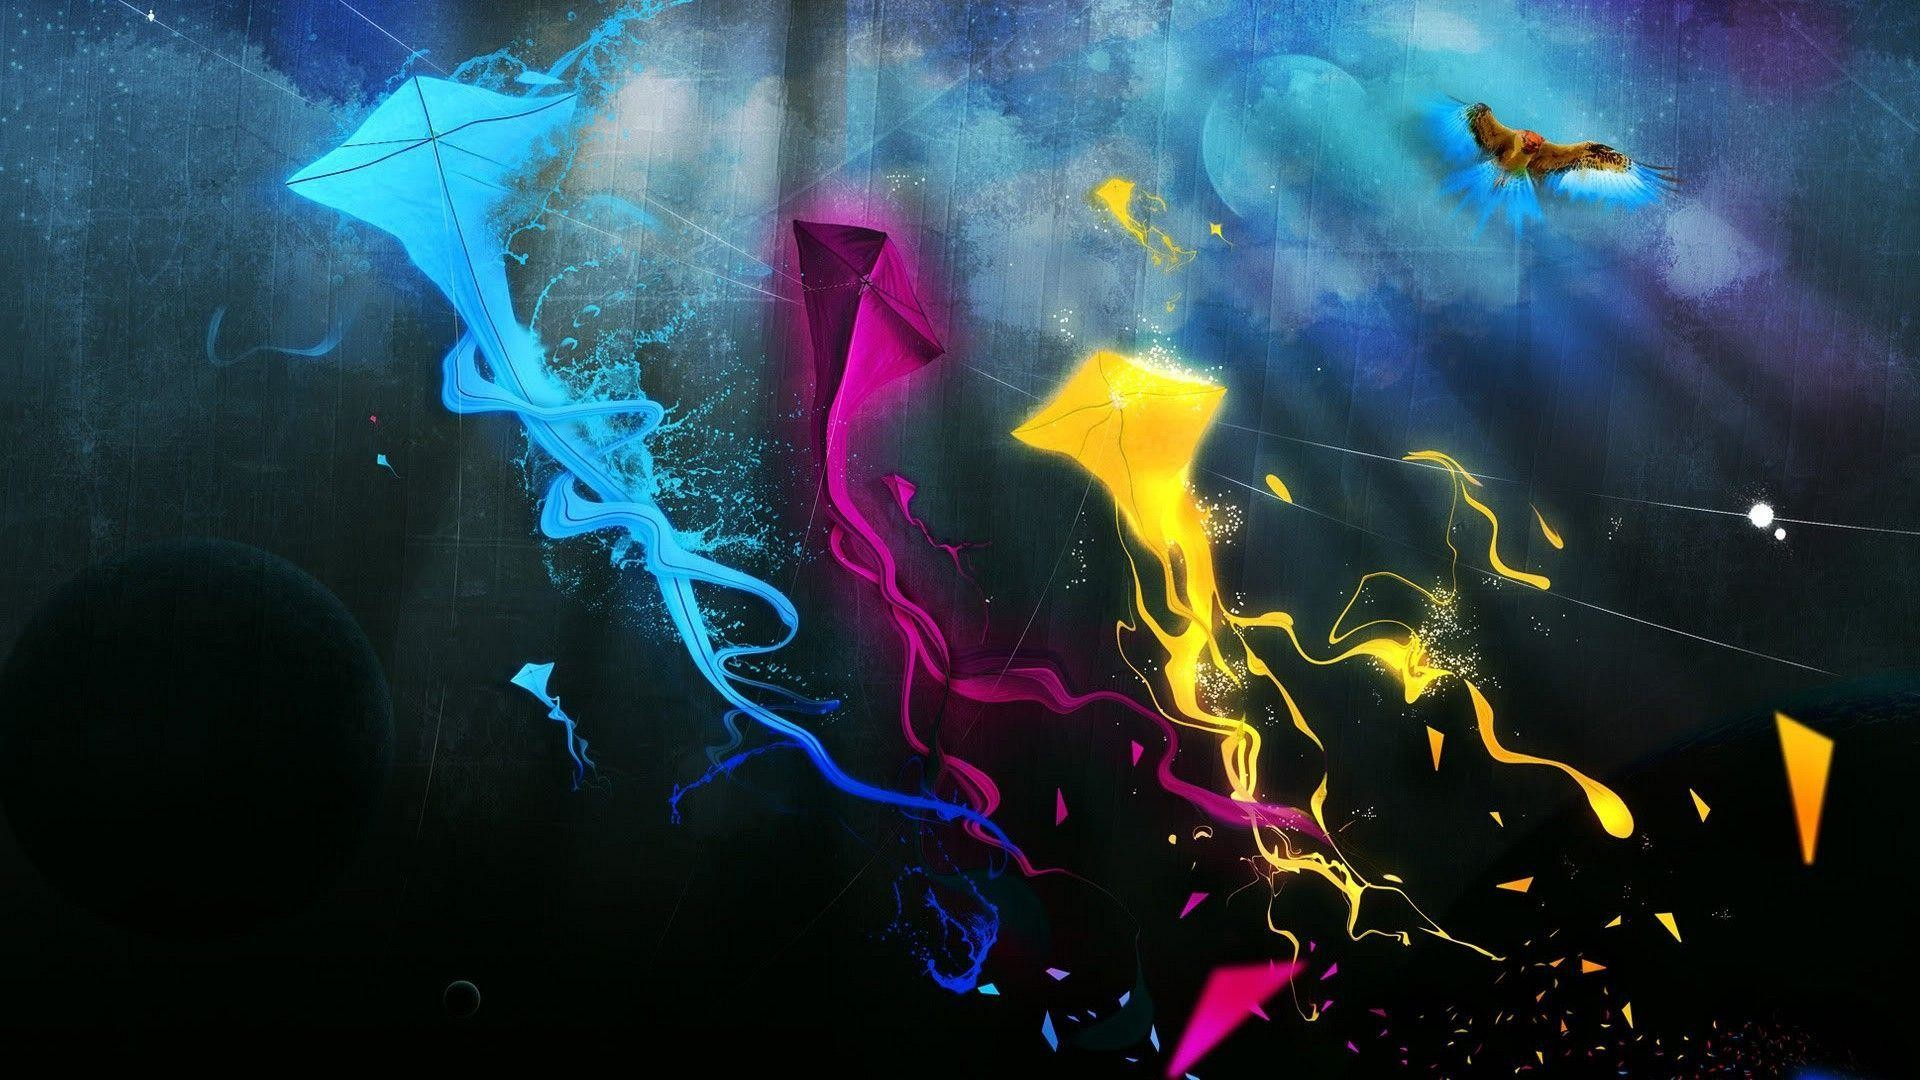 1920x1080 Hd 3D Abstract Wallpapers 1080P Images 6 HD Wallpapers | lzamgs.